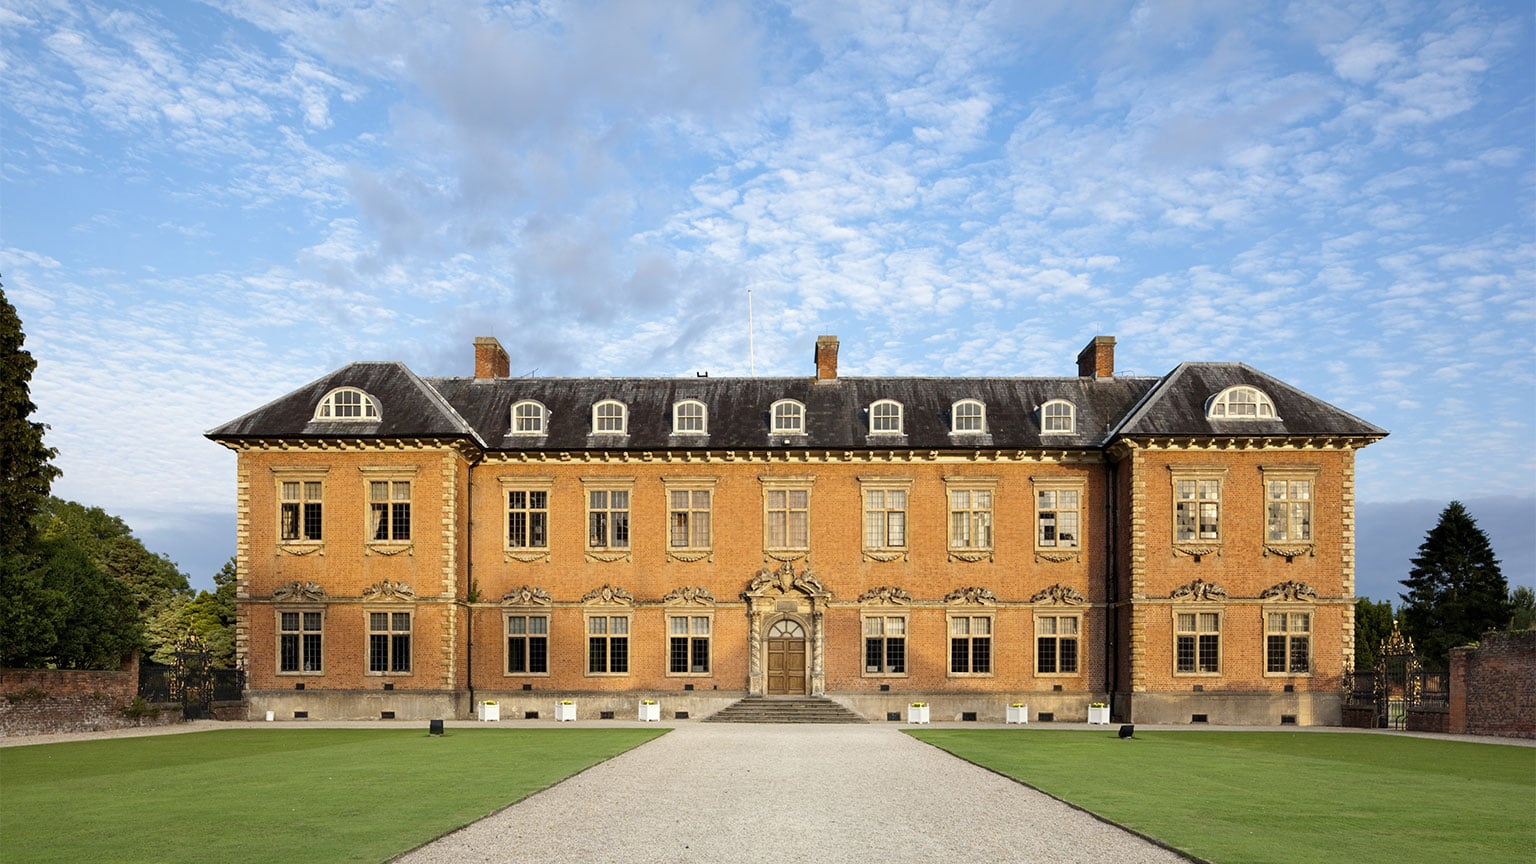 2. Tredegar House, Newport - Free entry with National Art Pass